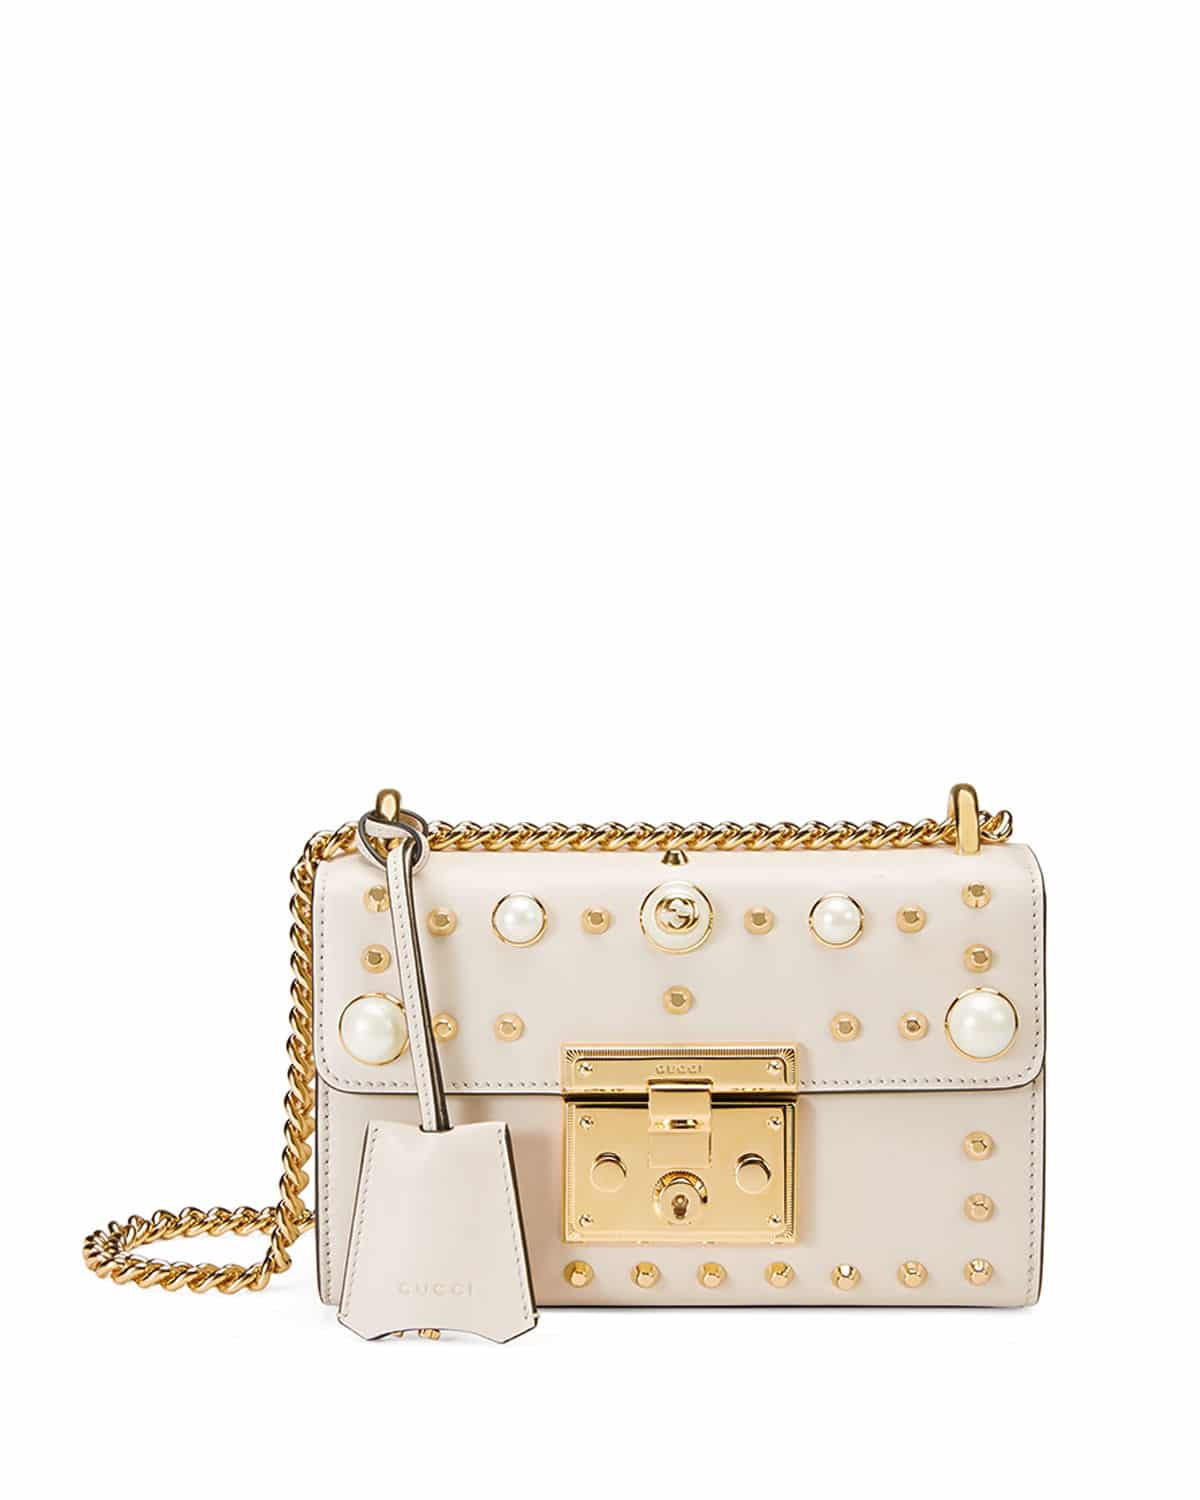 8985b20685e Gucci White Padlock Small Studded Leather Shoulder Bag